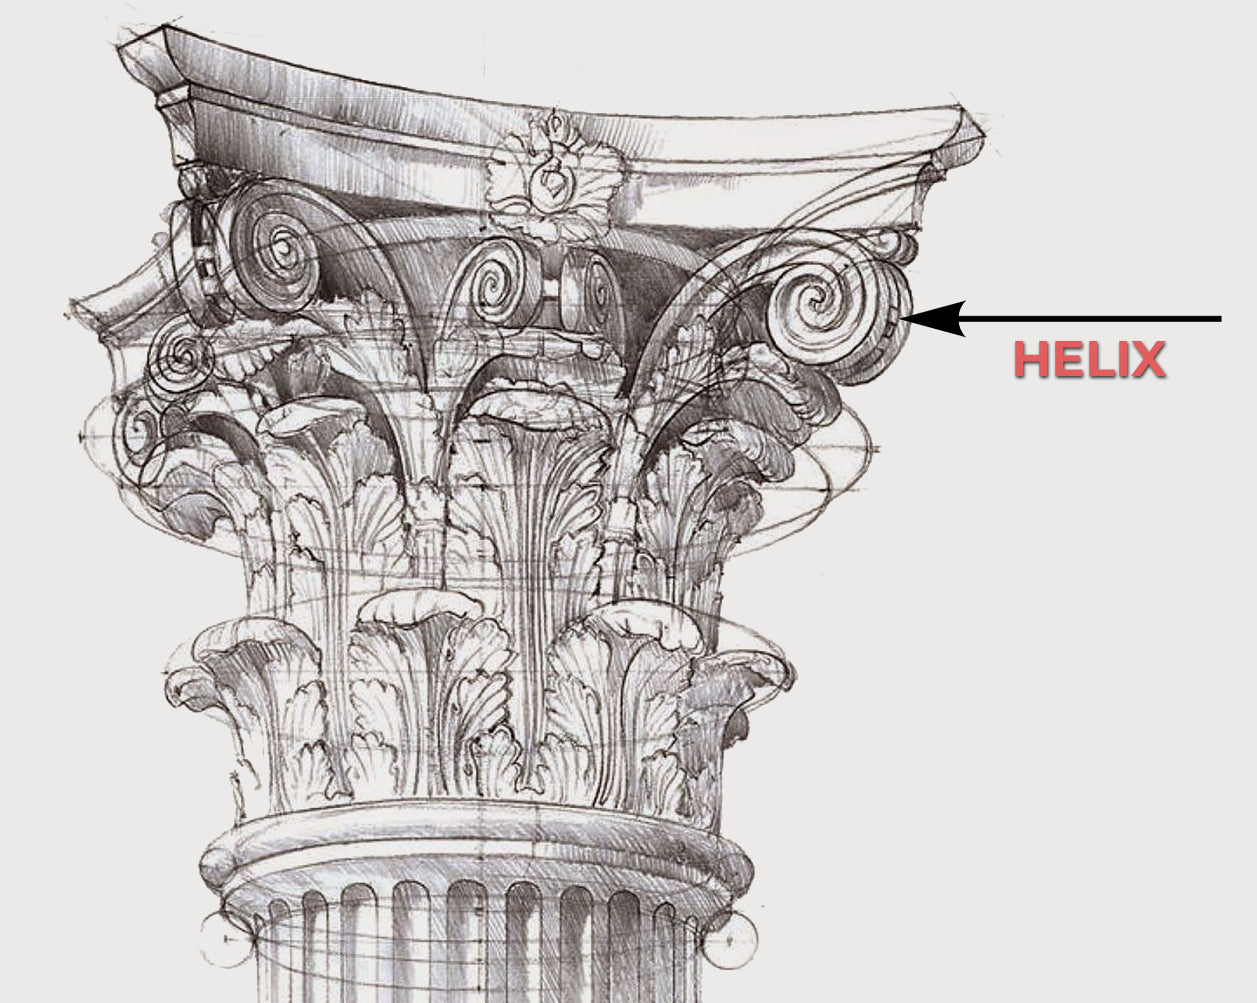 illustrated sketch of a helix on a roman corinthian capital for brockwell incorporated's glossary of architectural terms